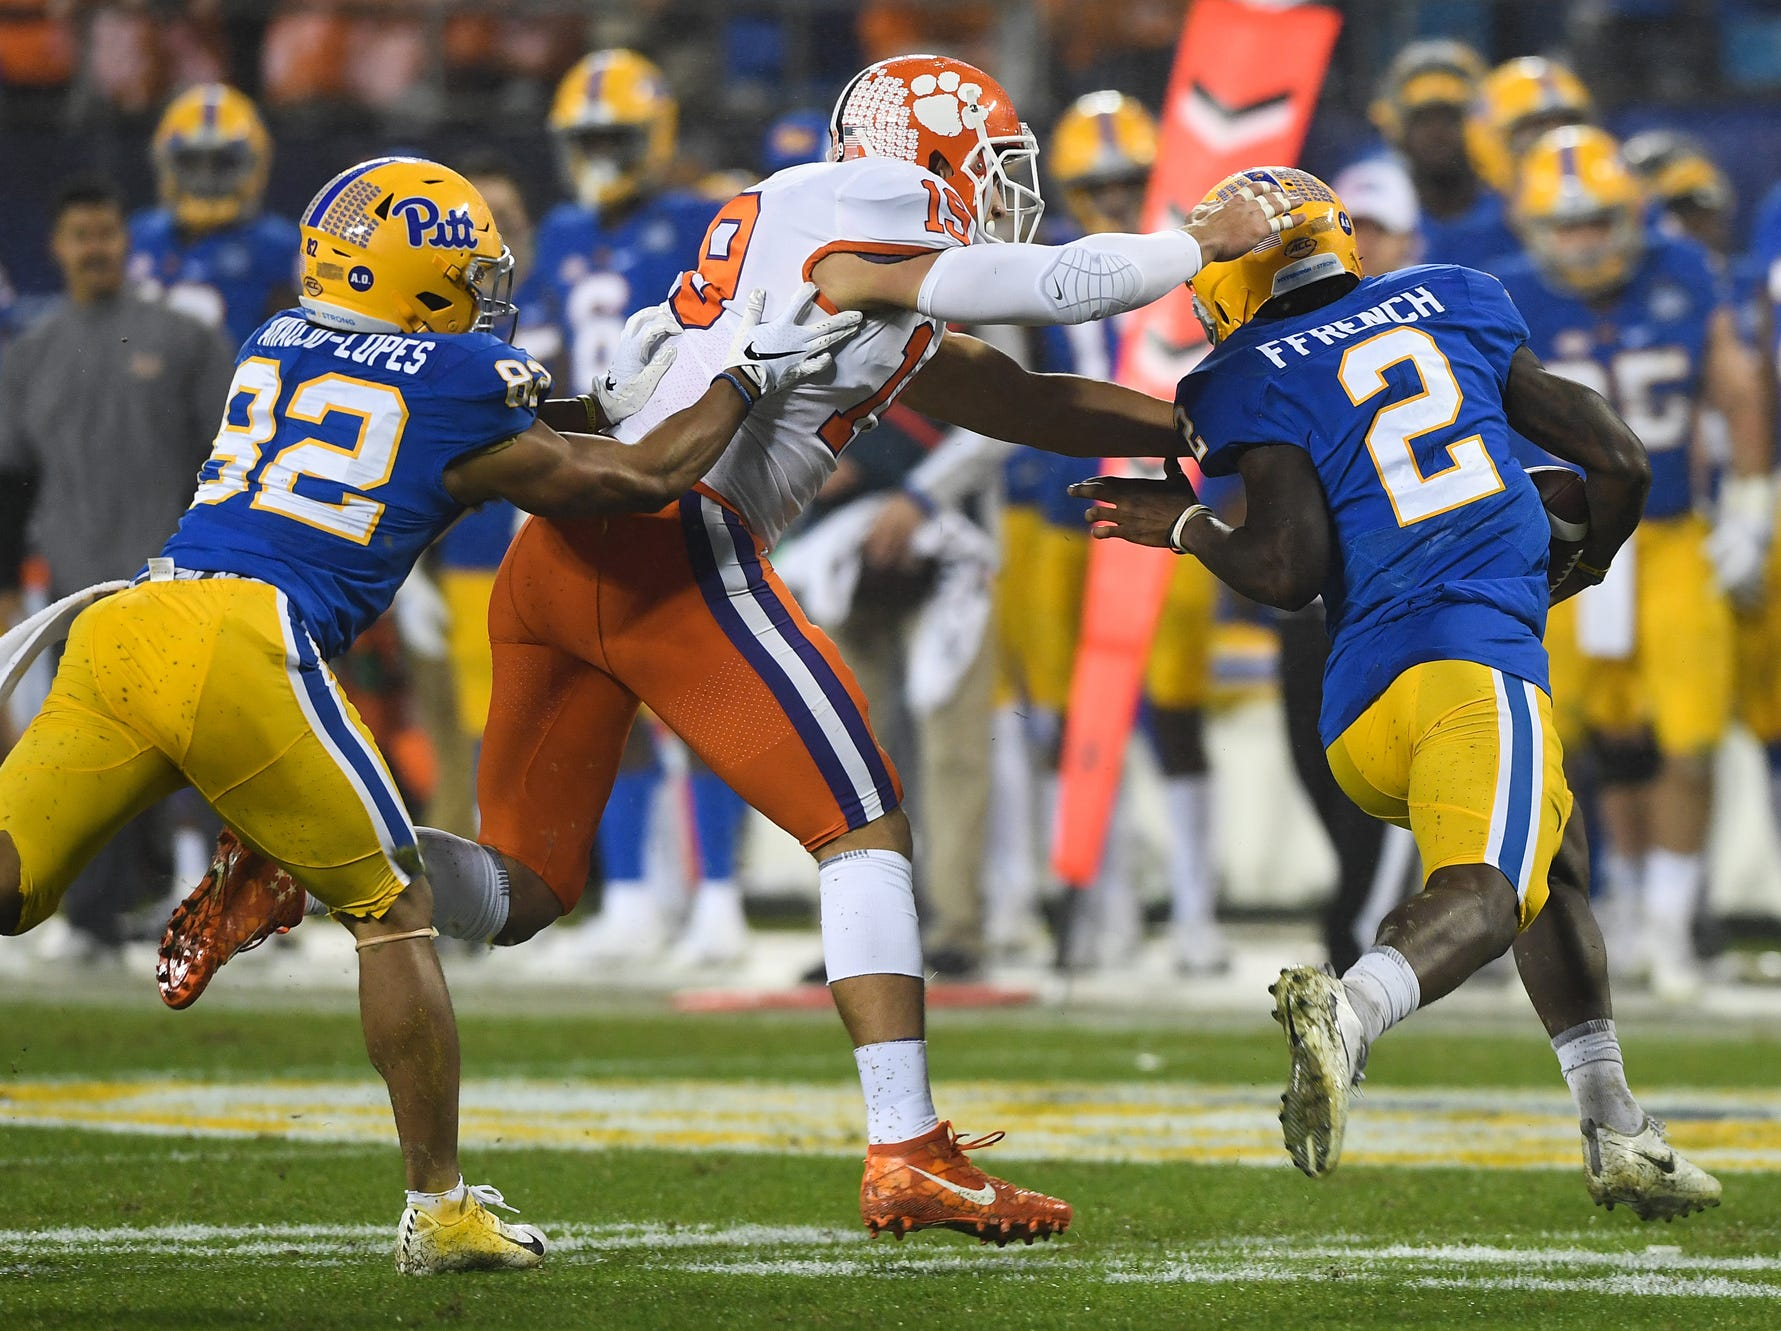 Clemson defensive back Tanner Muse (19) tries to stop Pittsburgh wide receiver Maurice Ffrench (2) during the 1st quarter of the Dr. Pepper ACC Championship at Bank of America Stadium in Charlotte, N.C. Saturday, December 1, 2018.